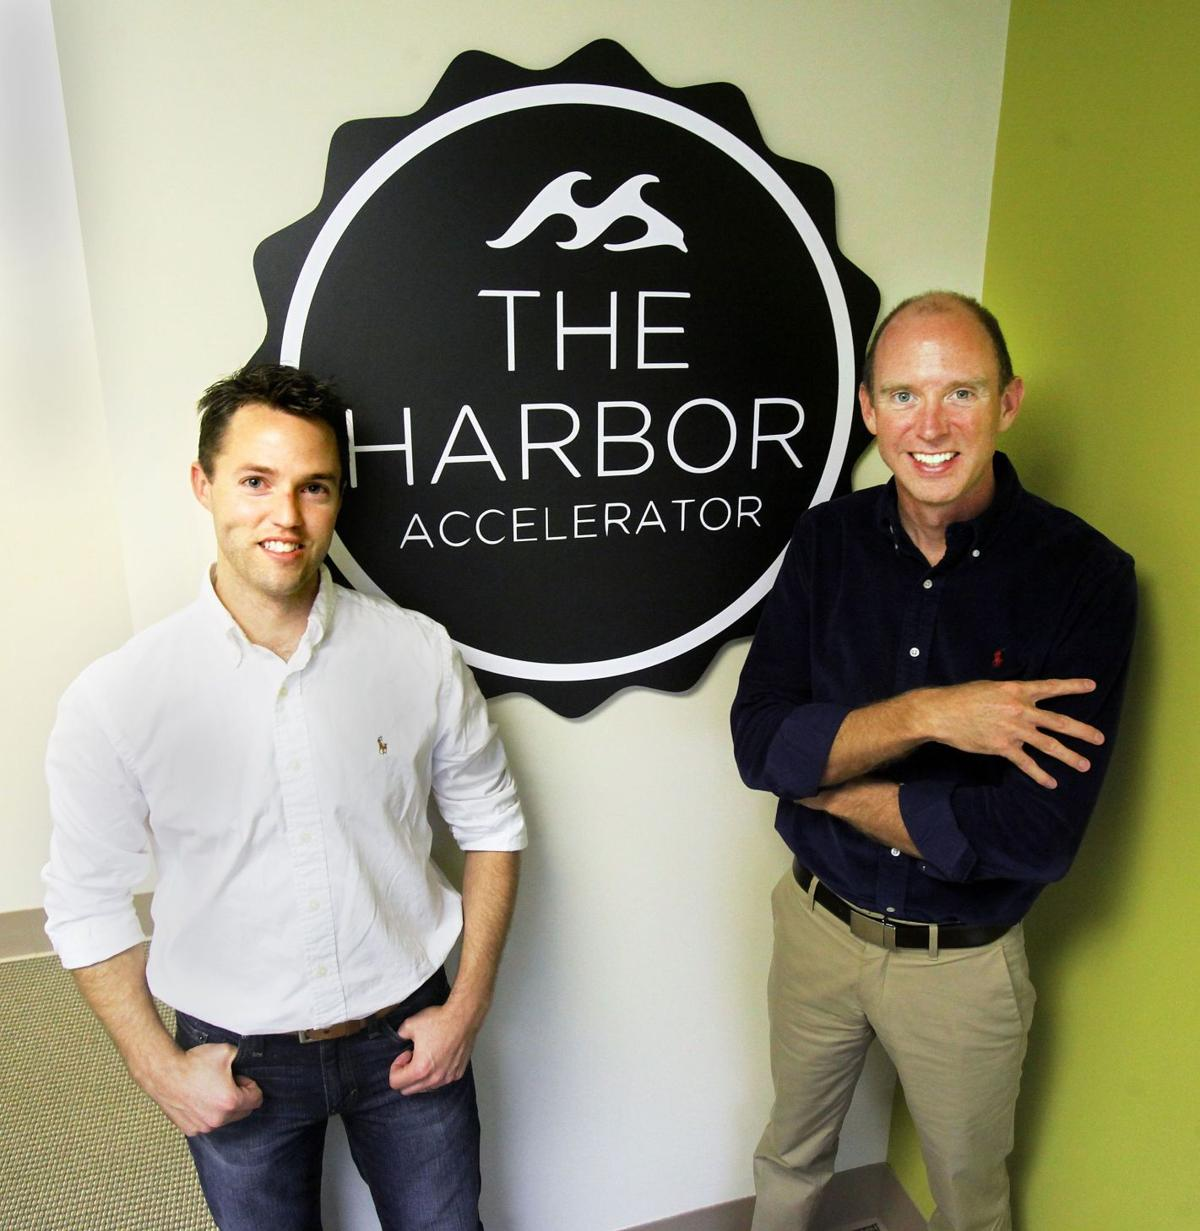 Business incubator to open location in downtown Summerville